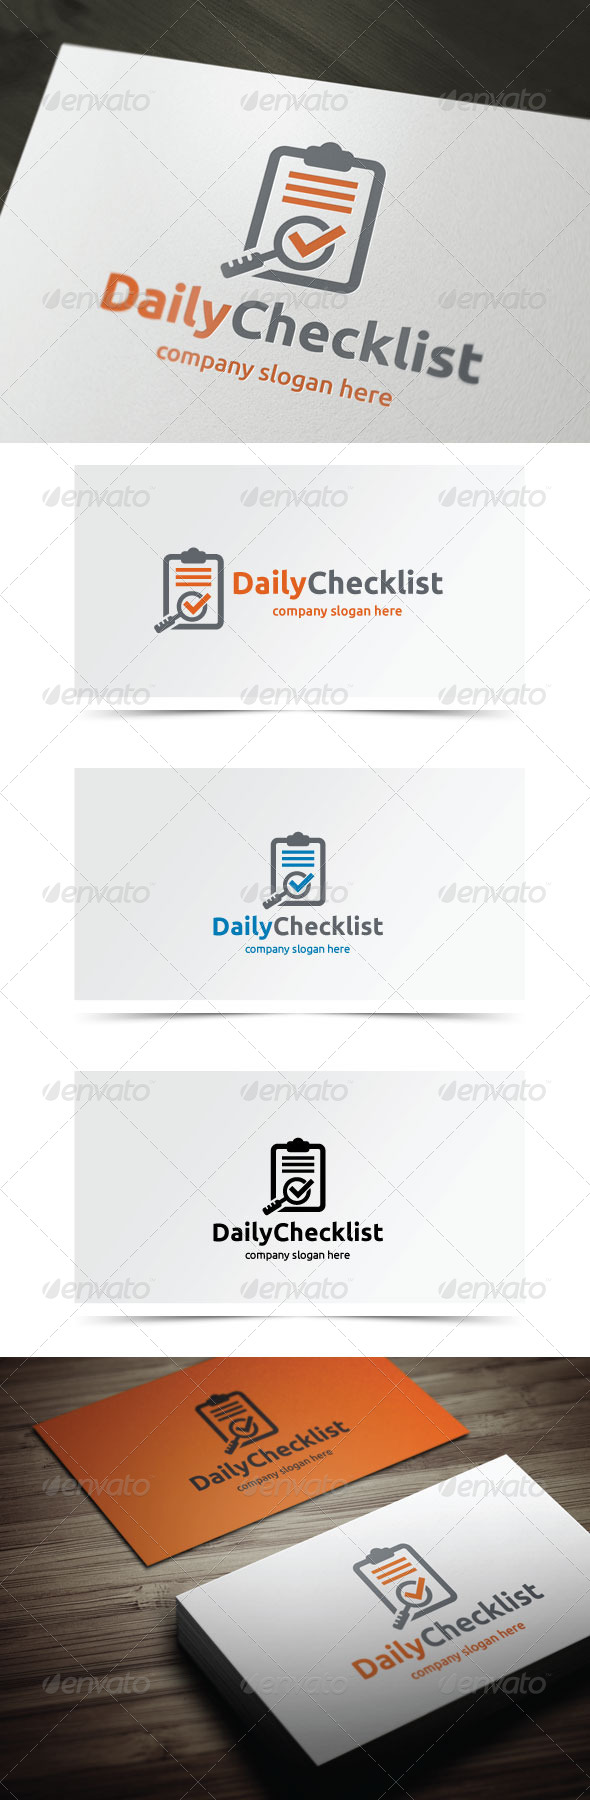 GraphicRiver Daily Checklist 6202281